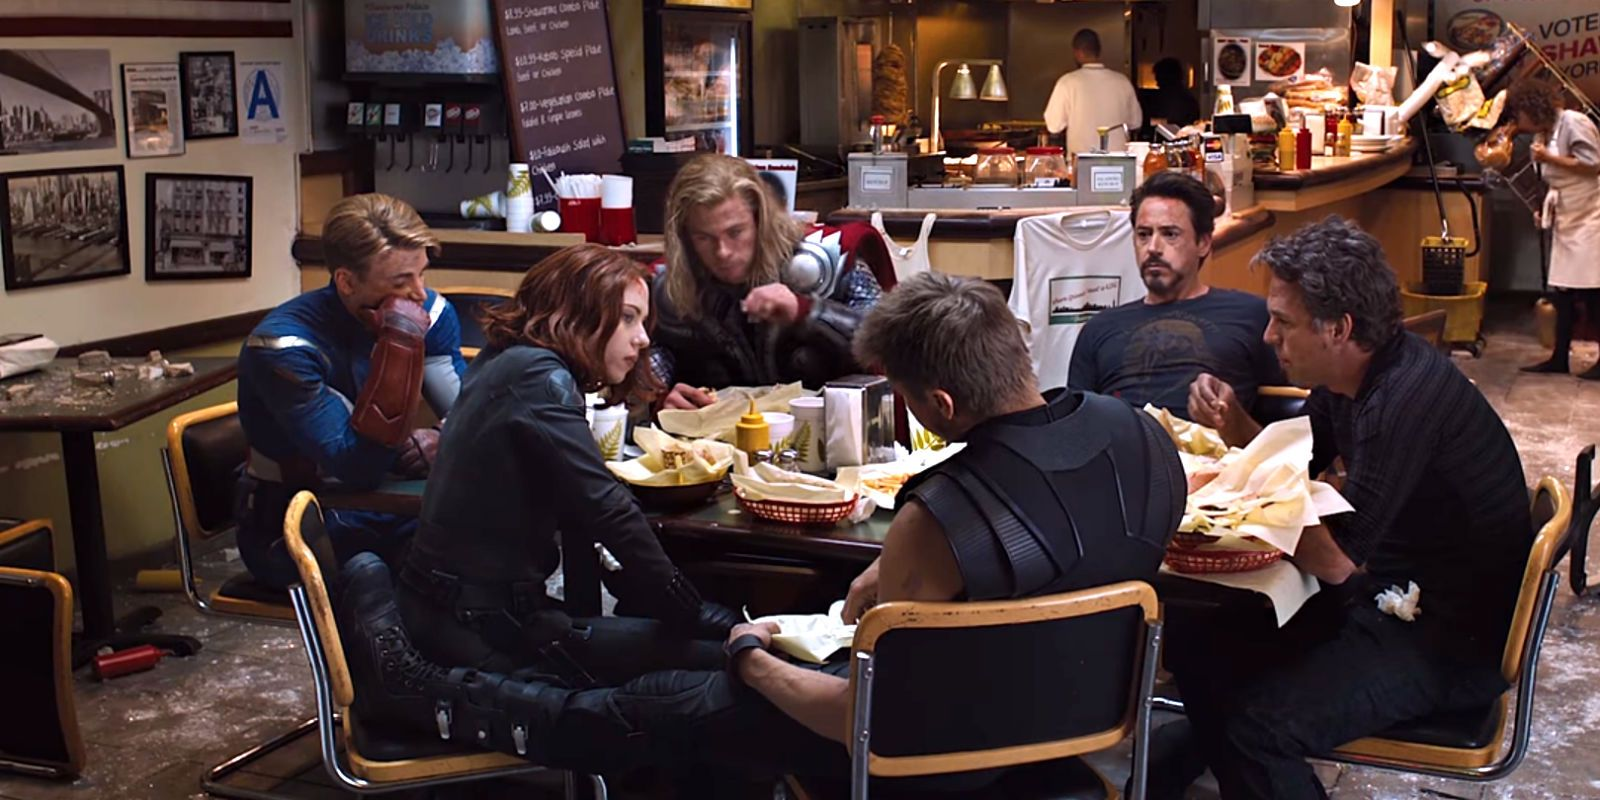 2. The Avengers. The Avengers have a straightforward yet wholesome and funny end credits scene. After the Battle of New York, Iron Man suggests that they have some shawarma. Hence, in the scene, they are seen eating at a restaurant that is still being cleaned up from the battle.